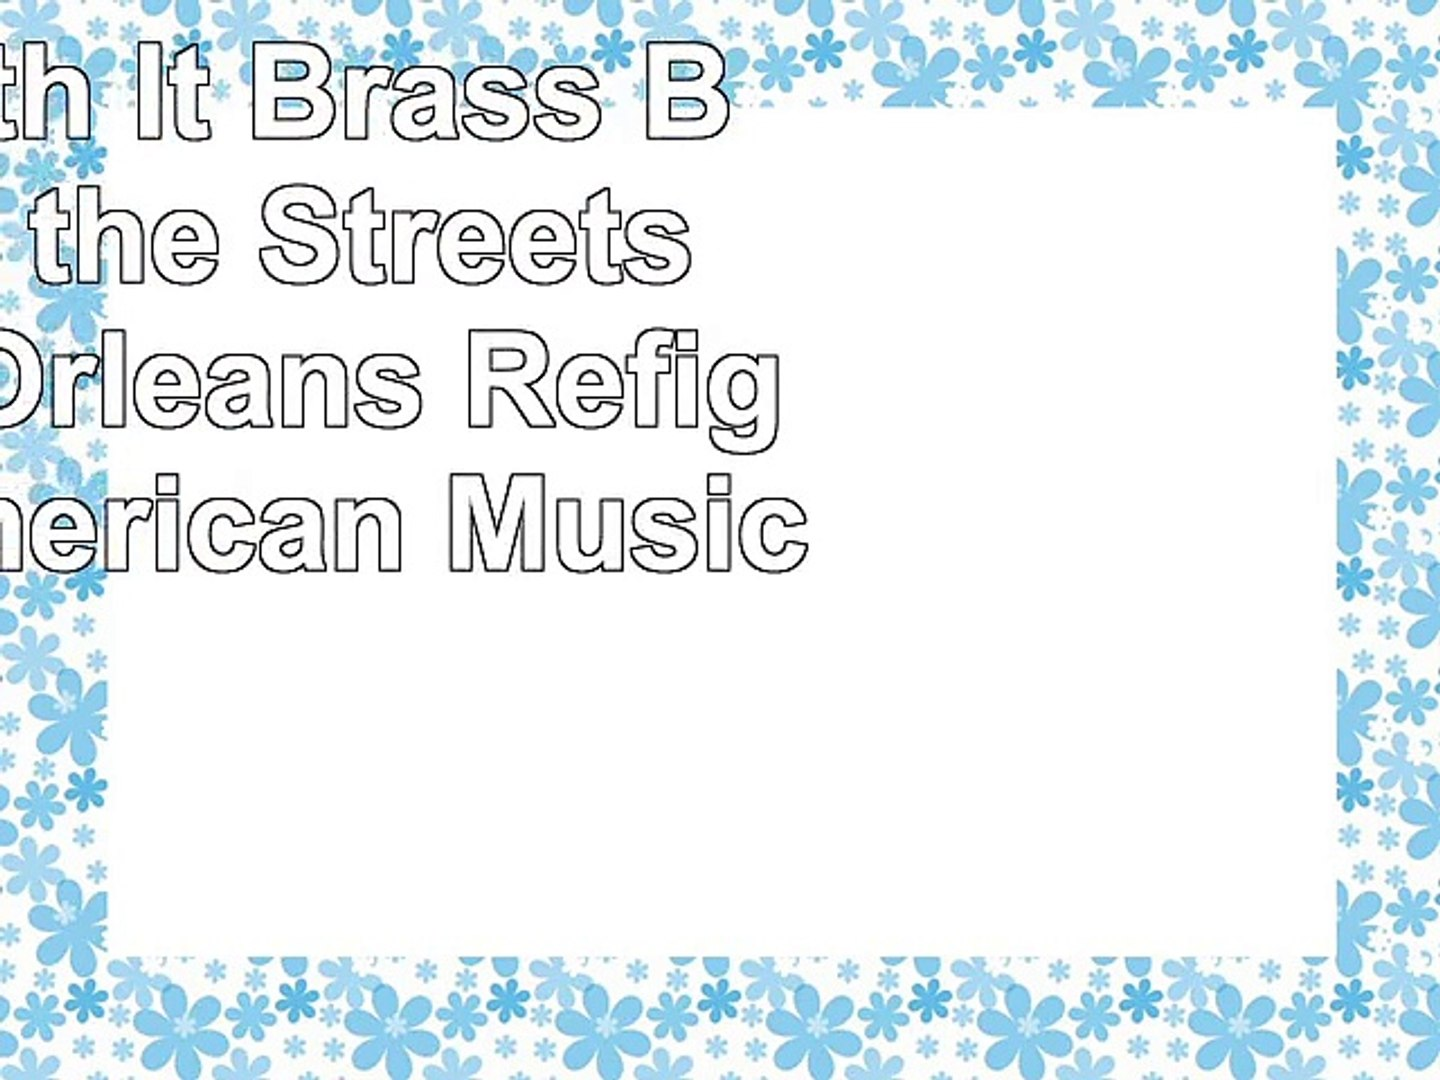 read  Roll With It Brass Bands in the Streets of New Orleans Refiguring American Music 7ba1a828